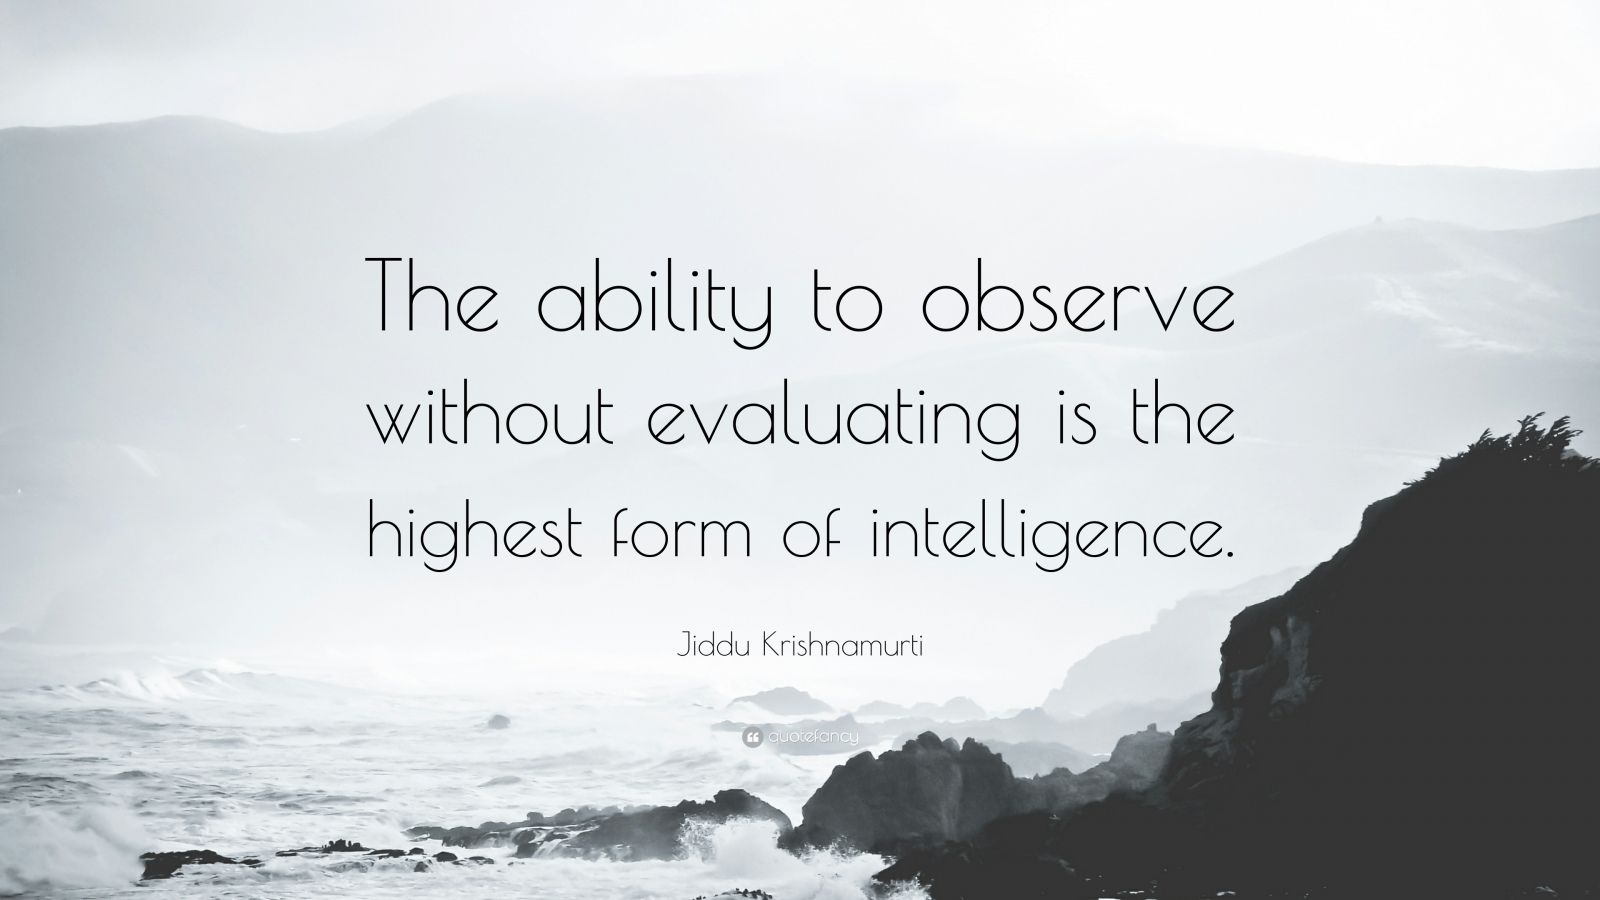 "Intelligence Quotes: ""The ability to observe without evaluating is the highest form of intelligence."" — Jiddu Krishnamurti"